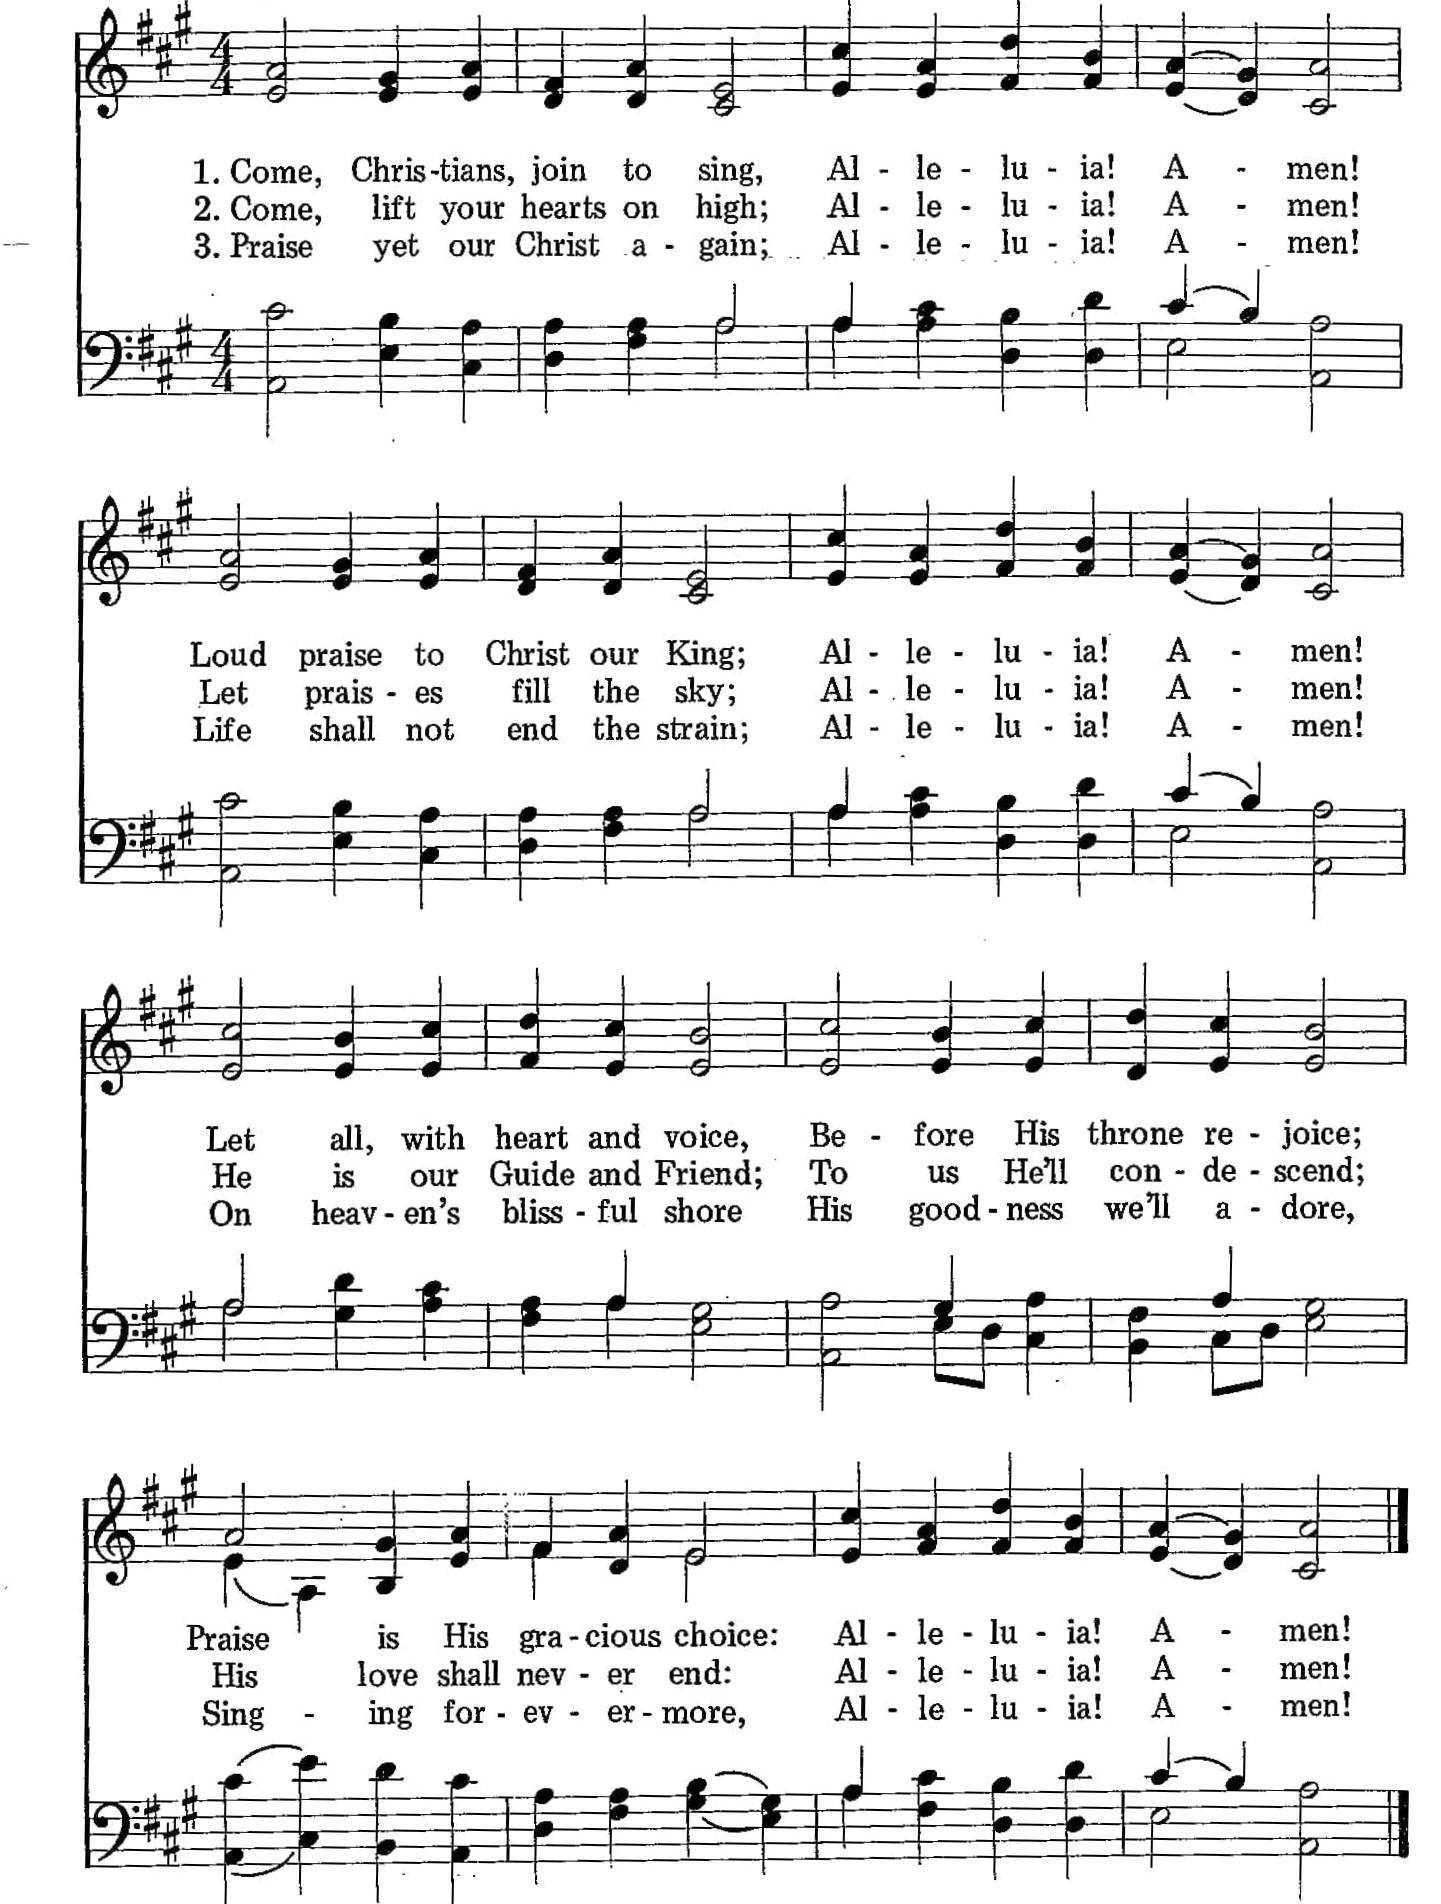 010 – Come, Christians, Join to SingSDA HYMNAL | SDA HYMNAL